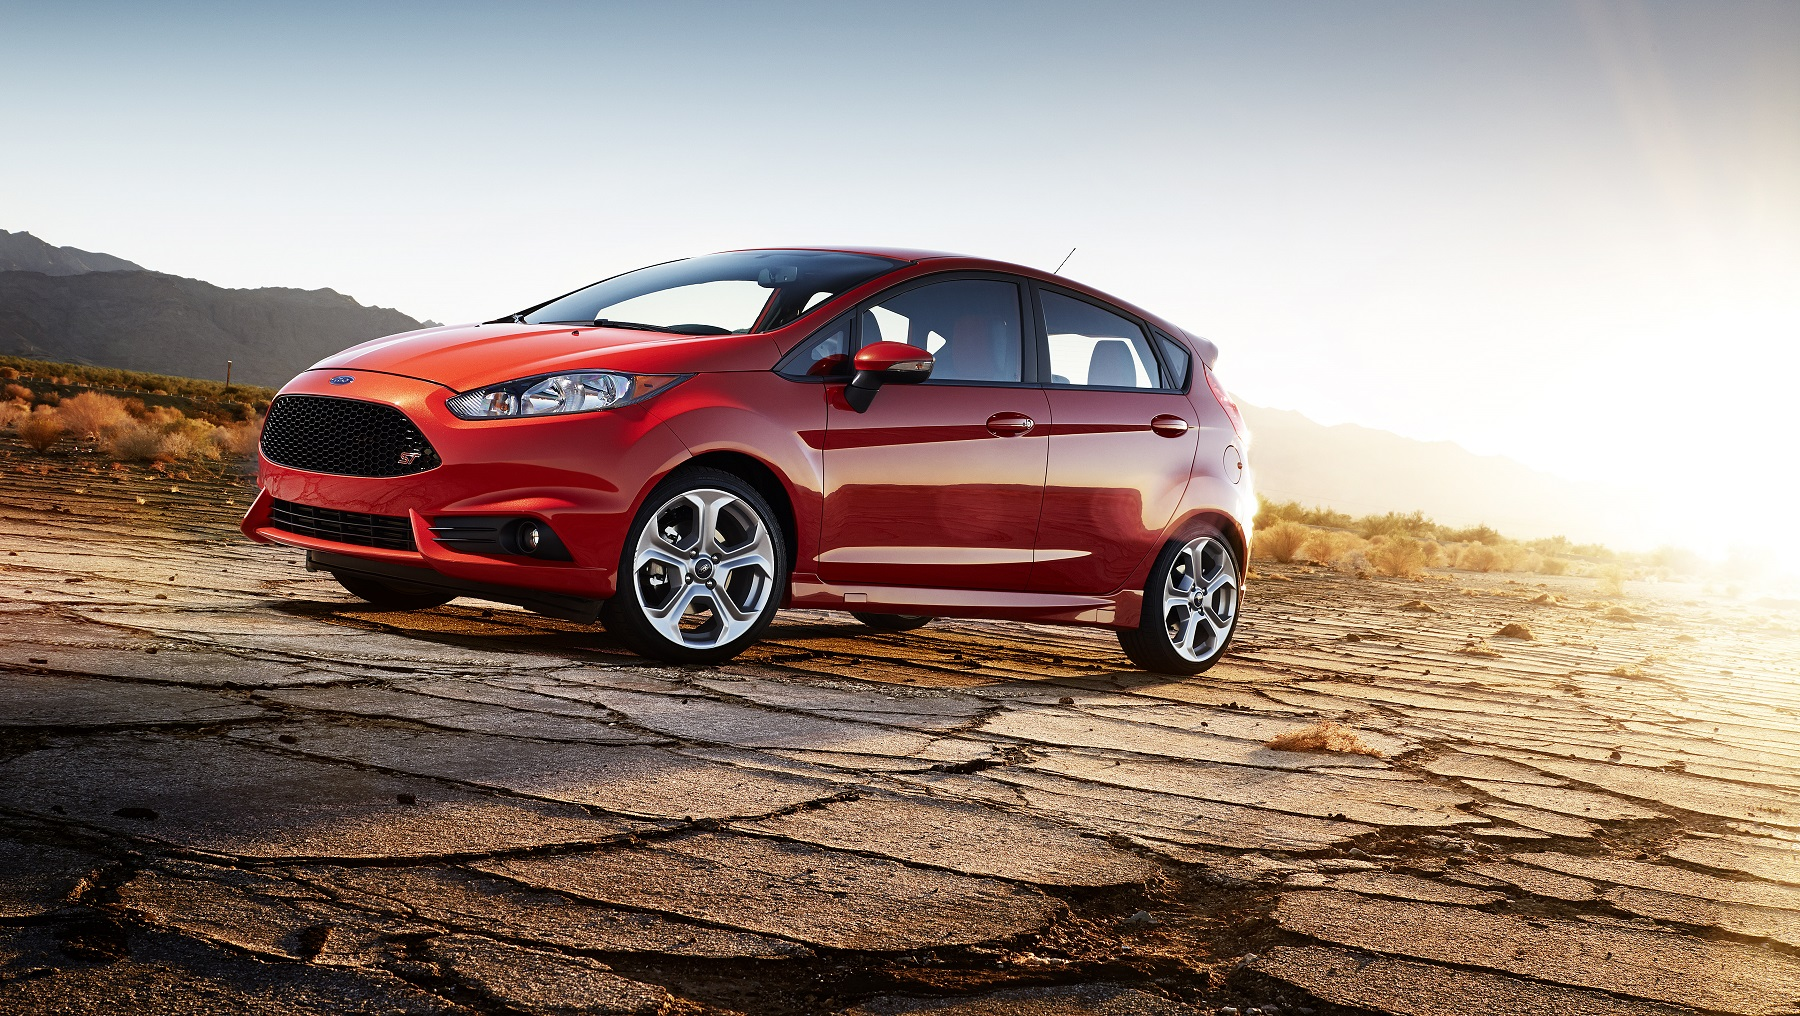 Universally Agreed Upon By The Automotive World To Be One Of The Best Performance Car Bargains On The Market The Ford Fiesta St Is A Performance Car You